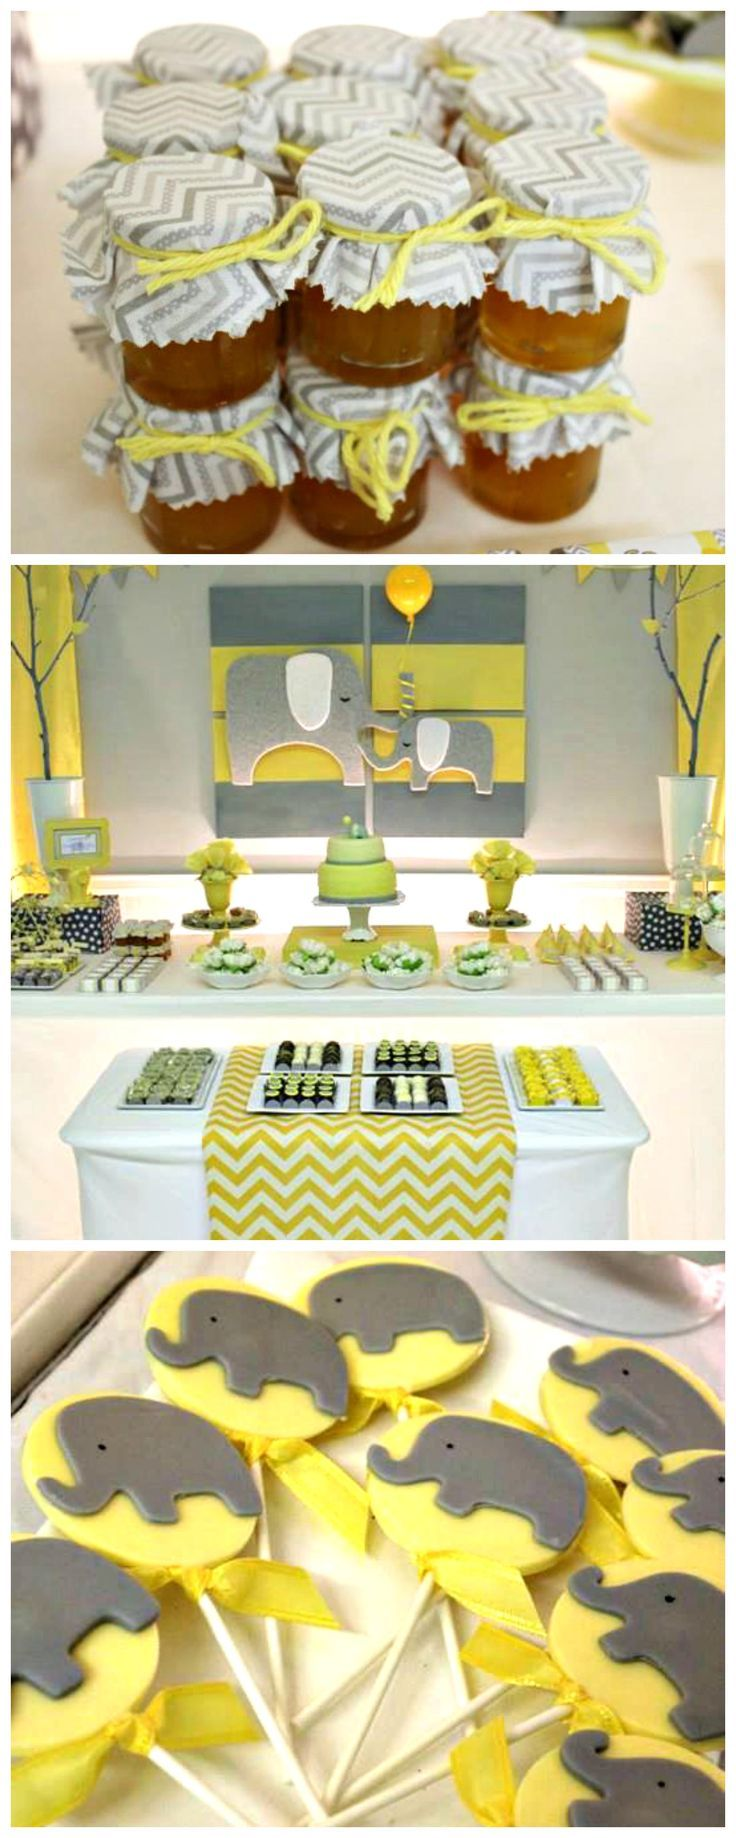 Yellow gray chevron baby shower ideas elephant theme for the garden pinterest elephant - Baby shower chevron decorations ...